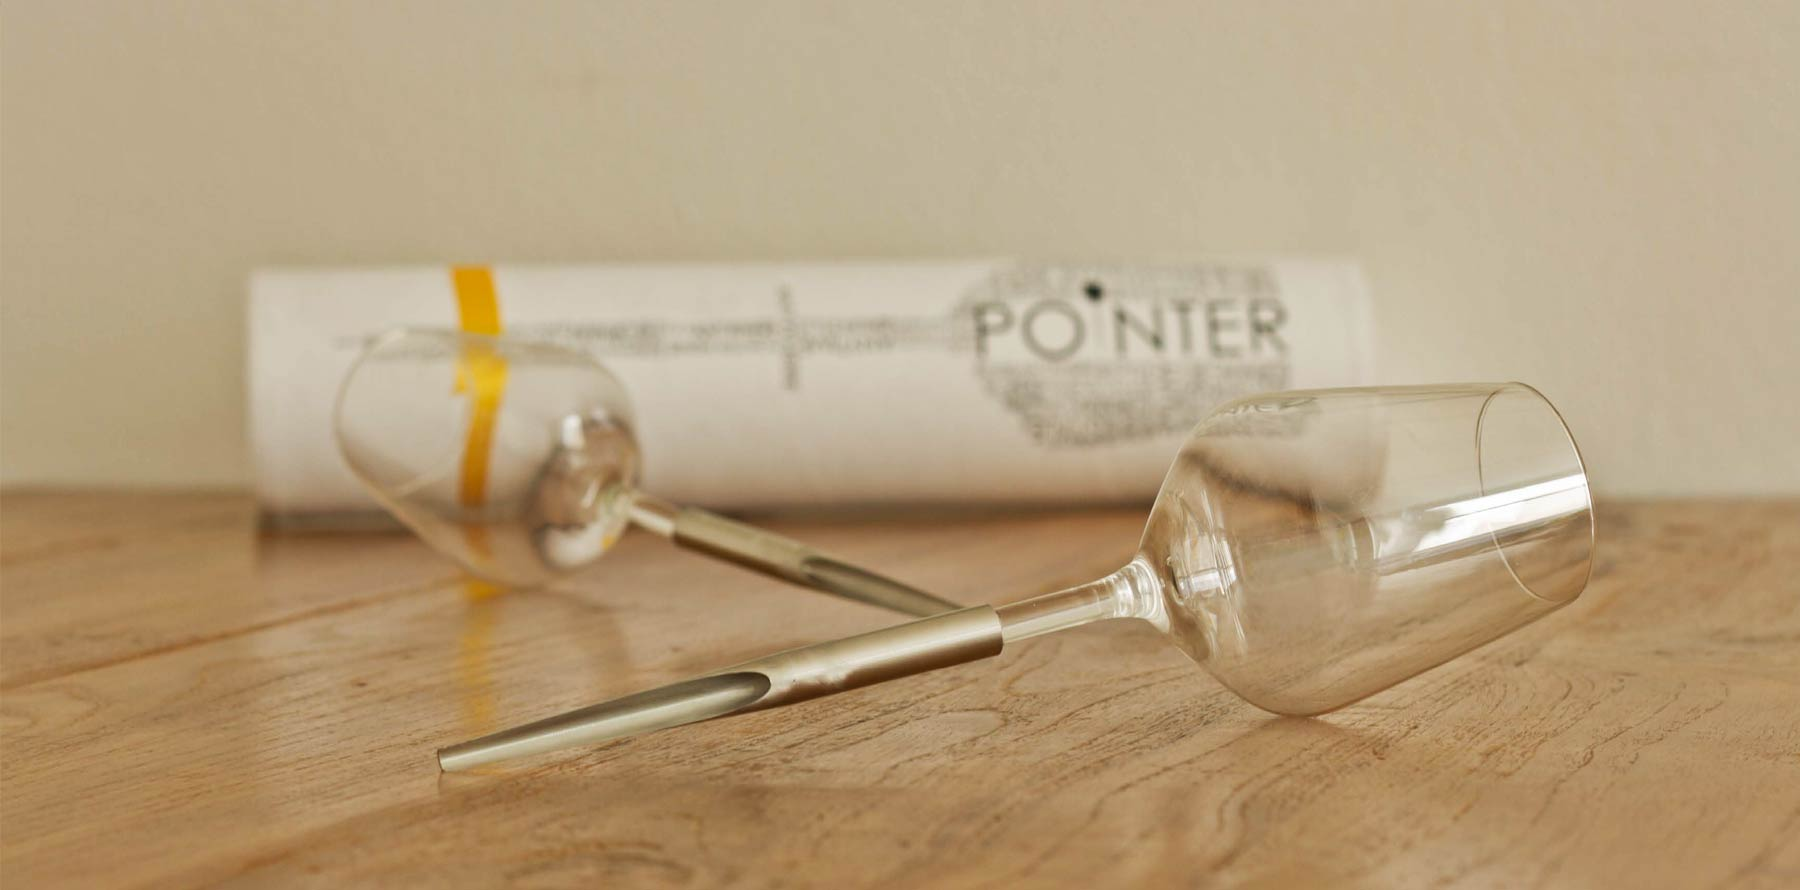 2 glasses with a pointed stem and packaging.